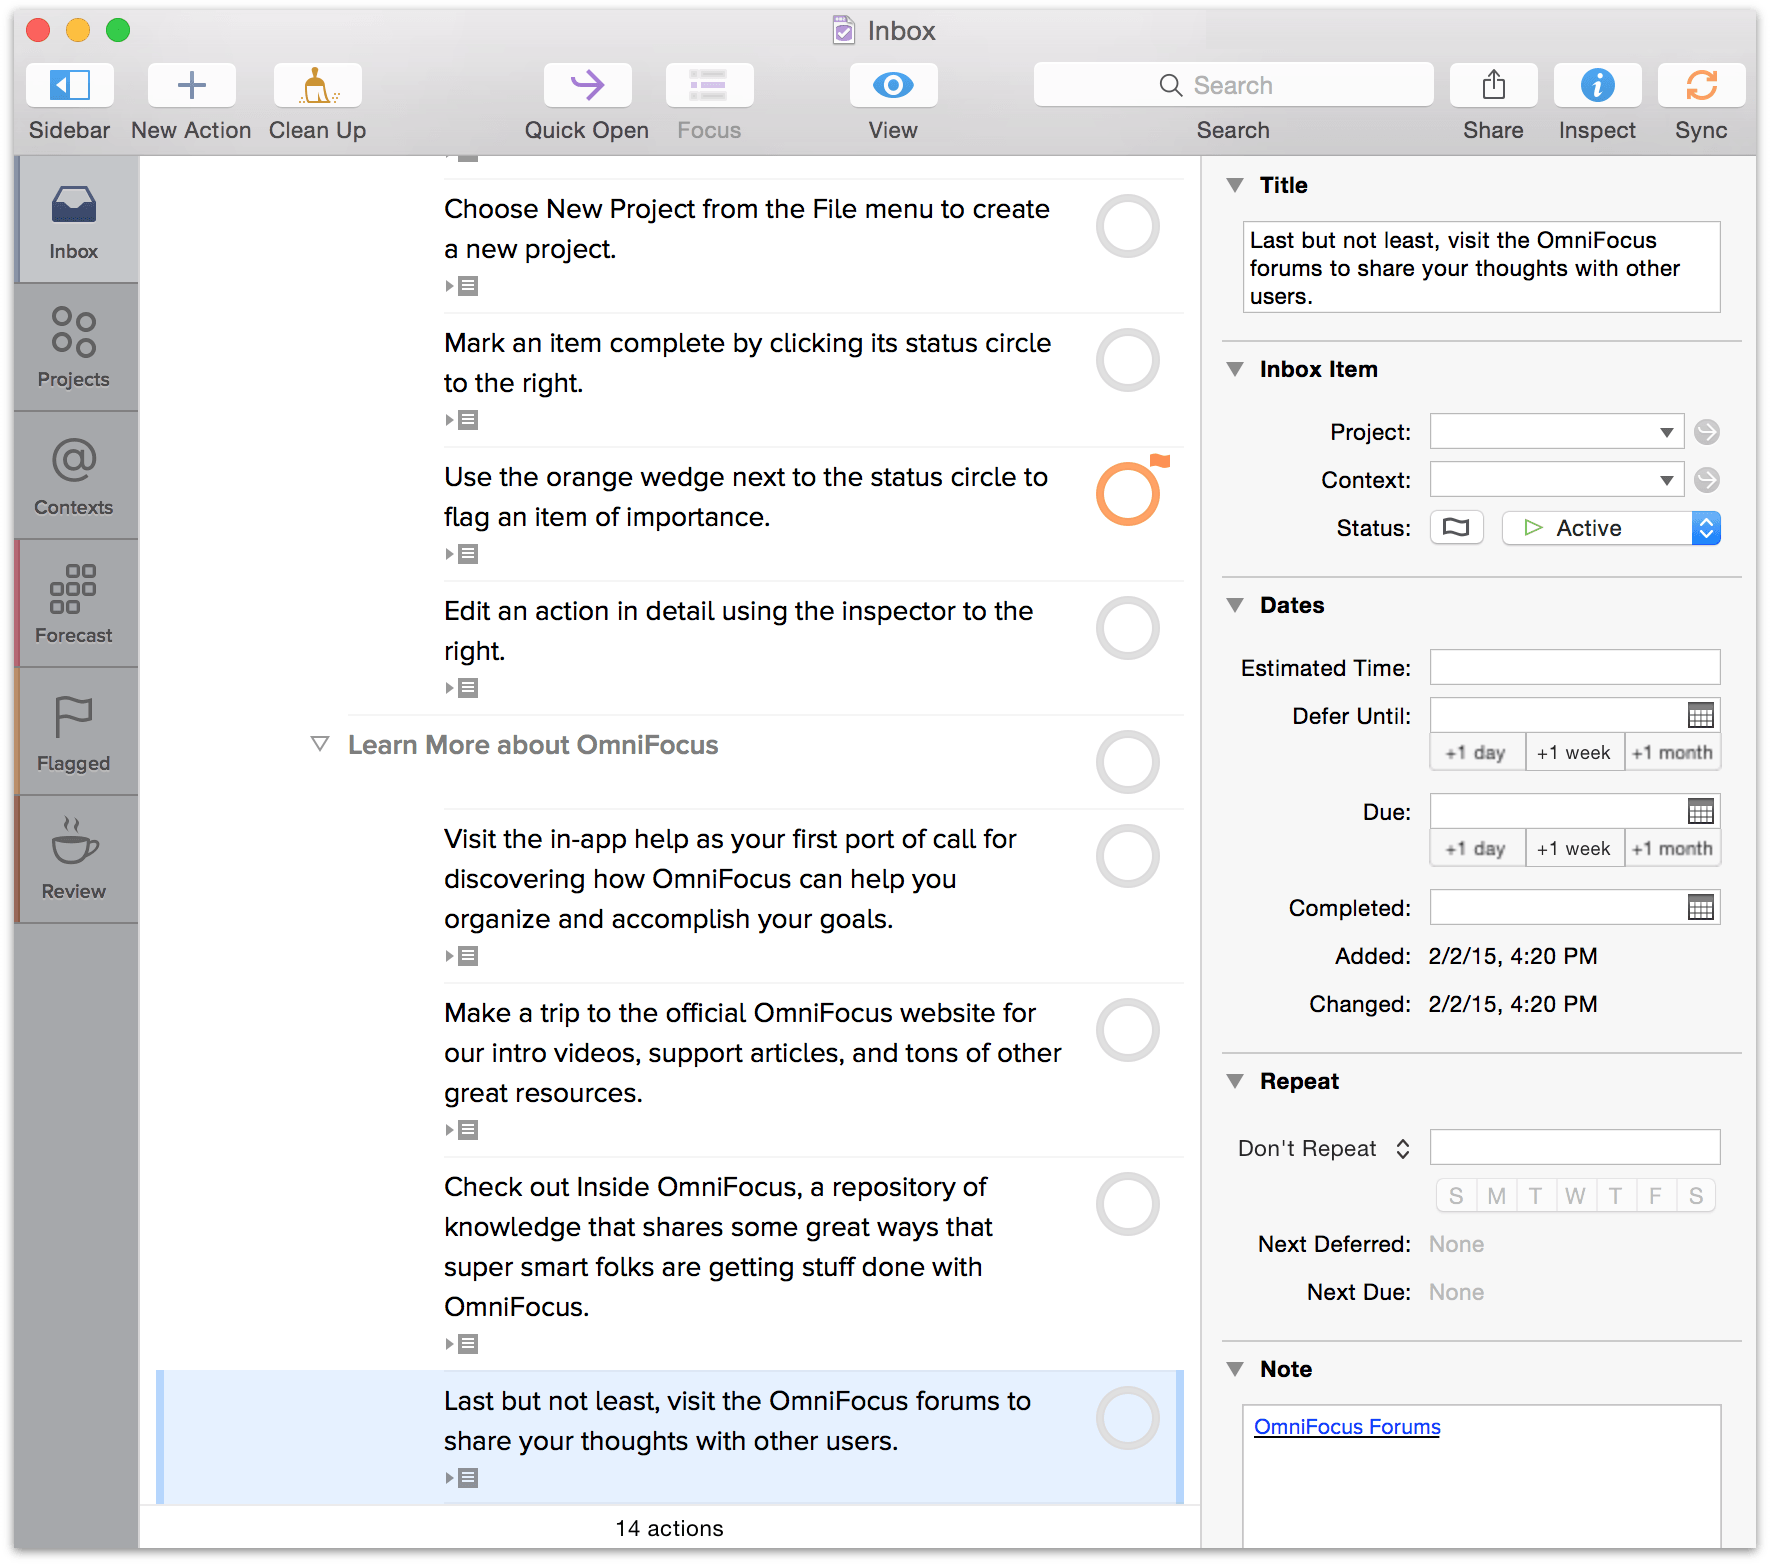 Actions can be edited in the main outline, or using the Inspector (at right)